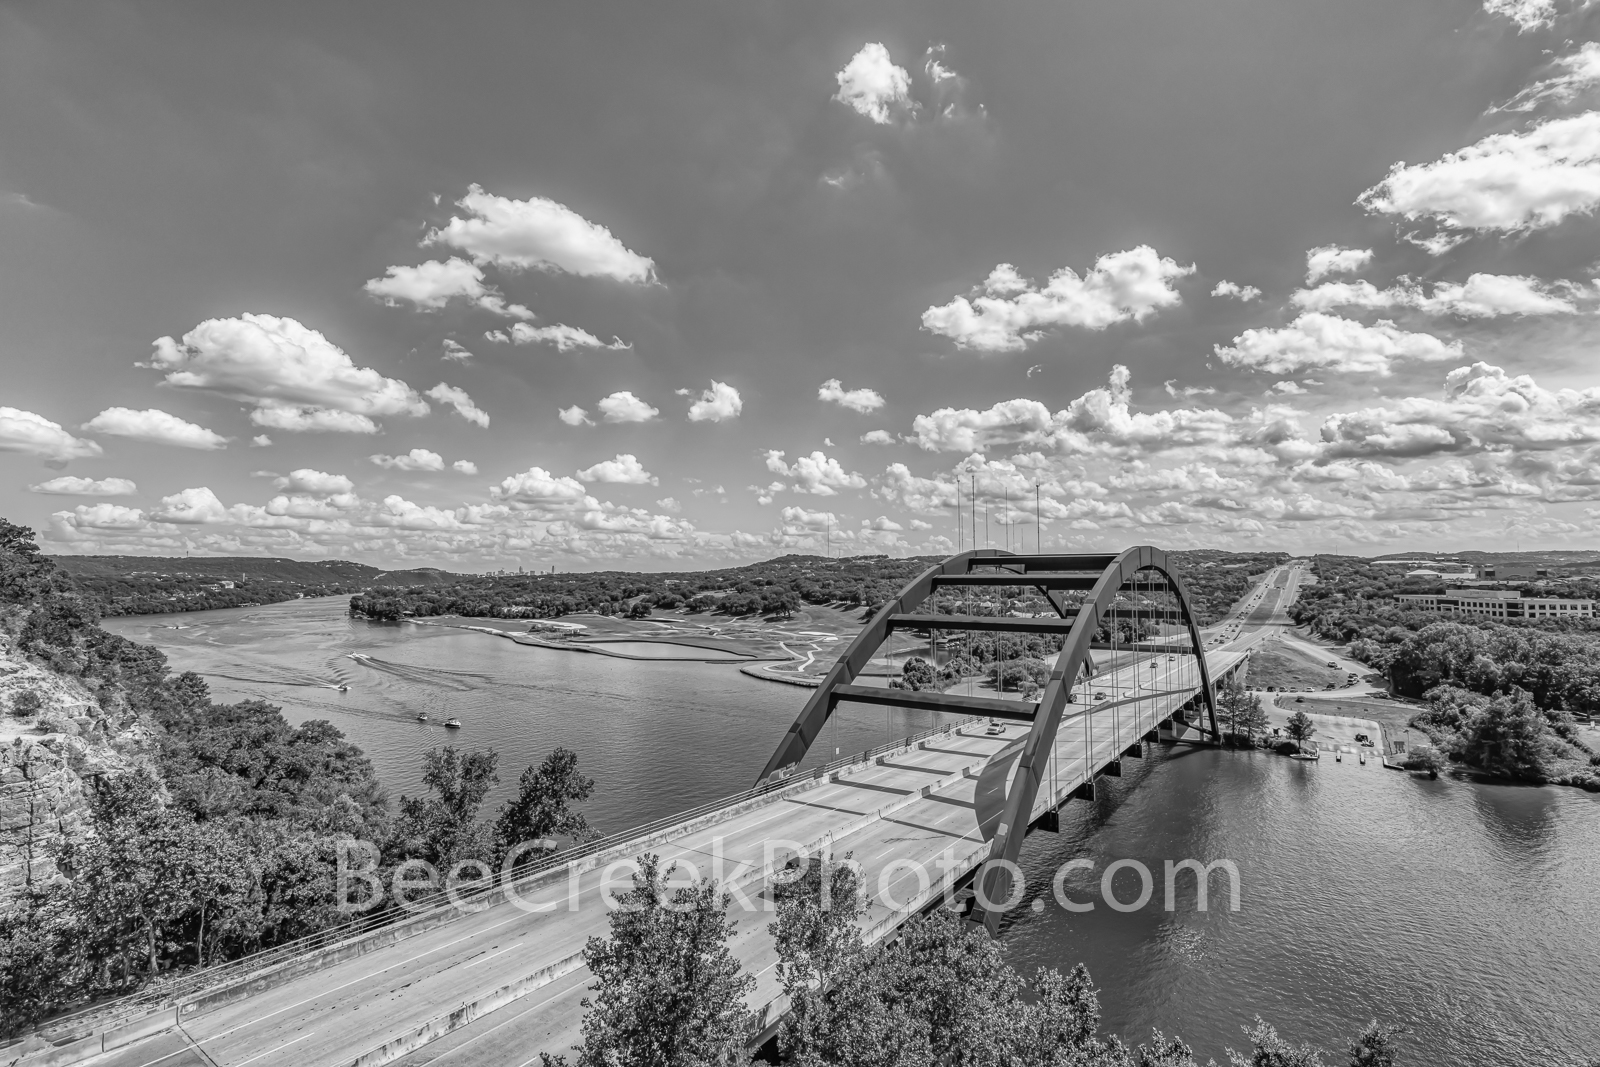 austin texas, 360 bridge, pennybacker bridge, 360 hwy, texas hill country, lake austin, downtown austin, city of austin, hill coutry, black and white, bw, b w, capital of texas highway, pennybacker ov, photo